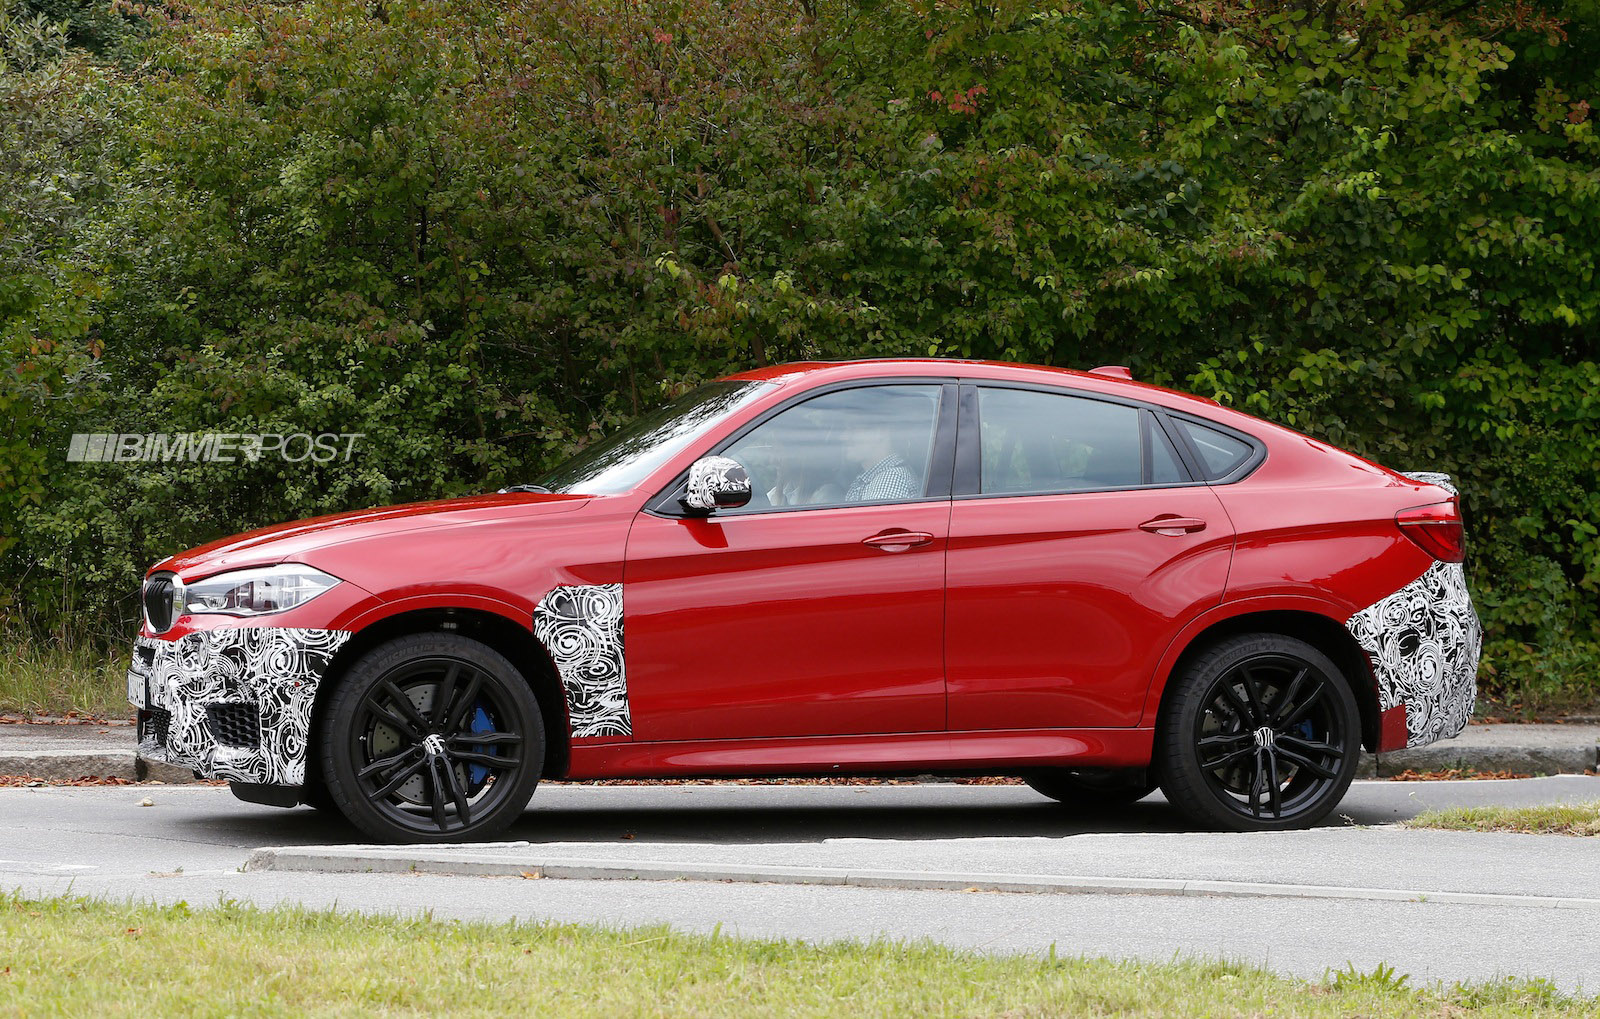 Bmw X6m Forum Bmw Forum Bmw News And Bmw Blog Bimmerpost